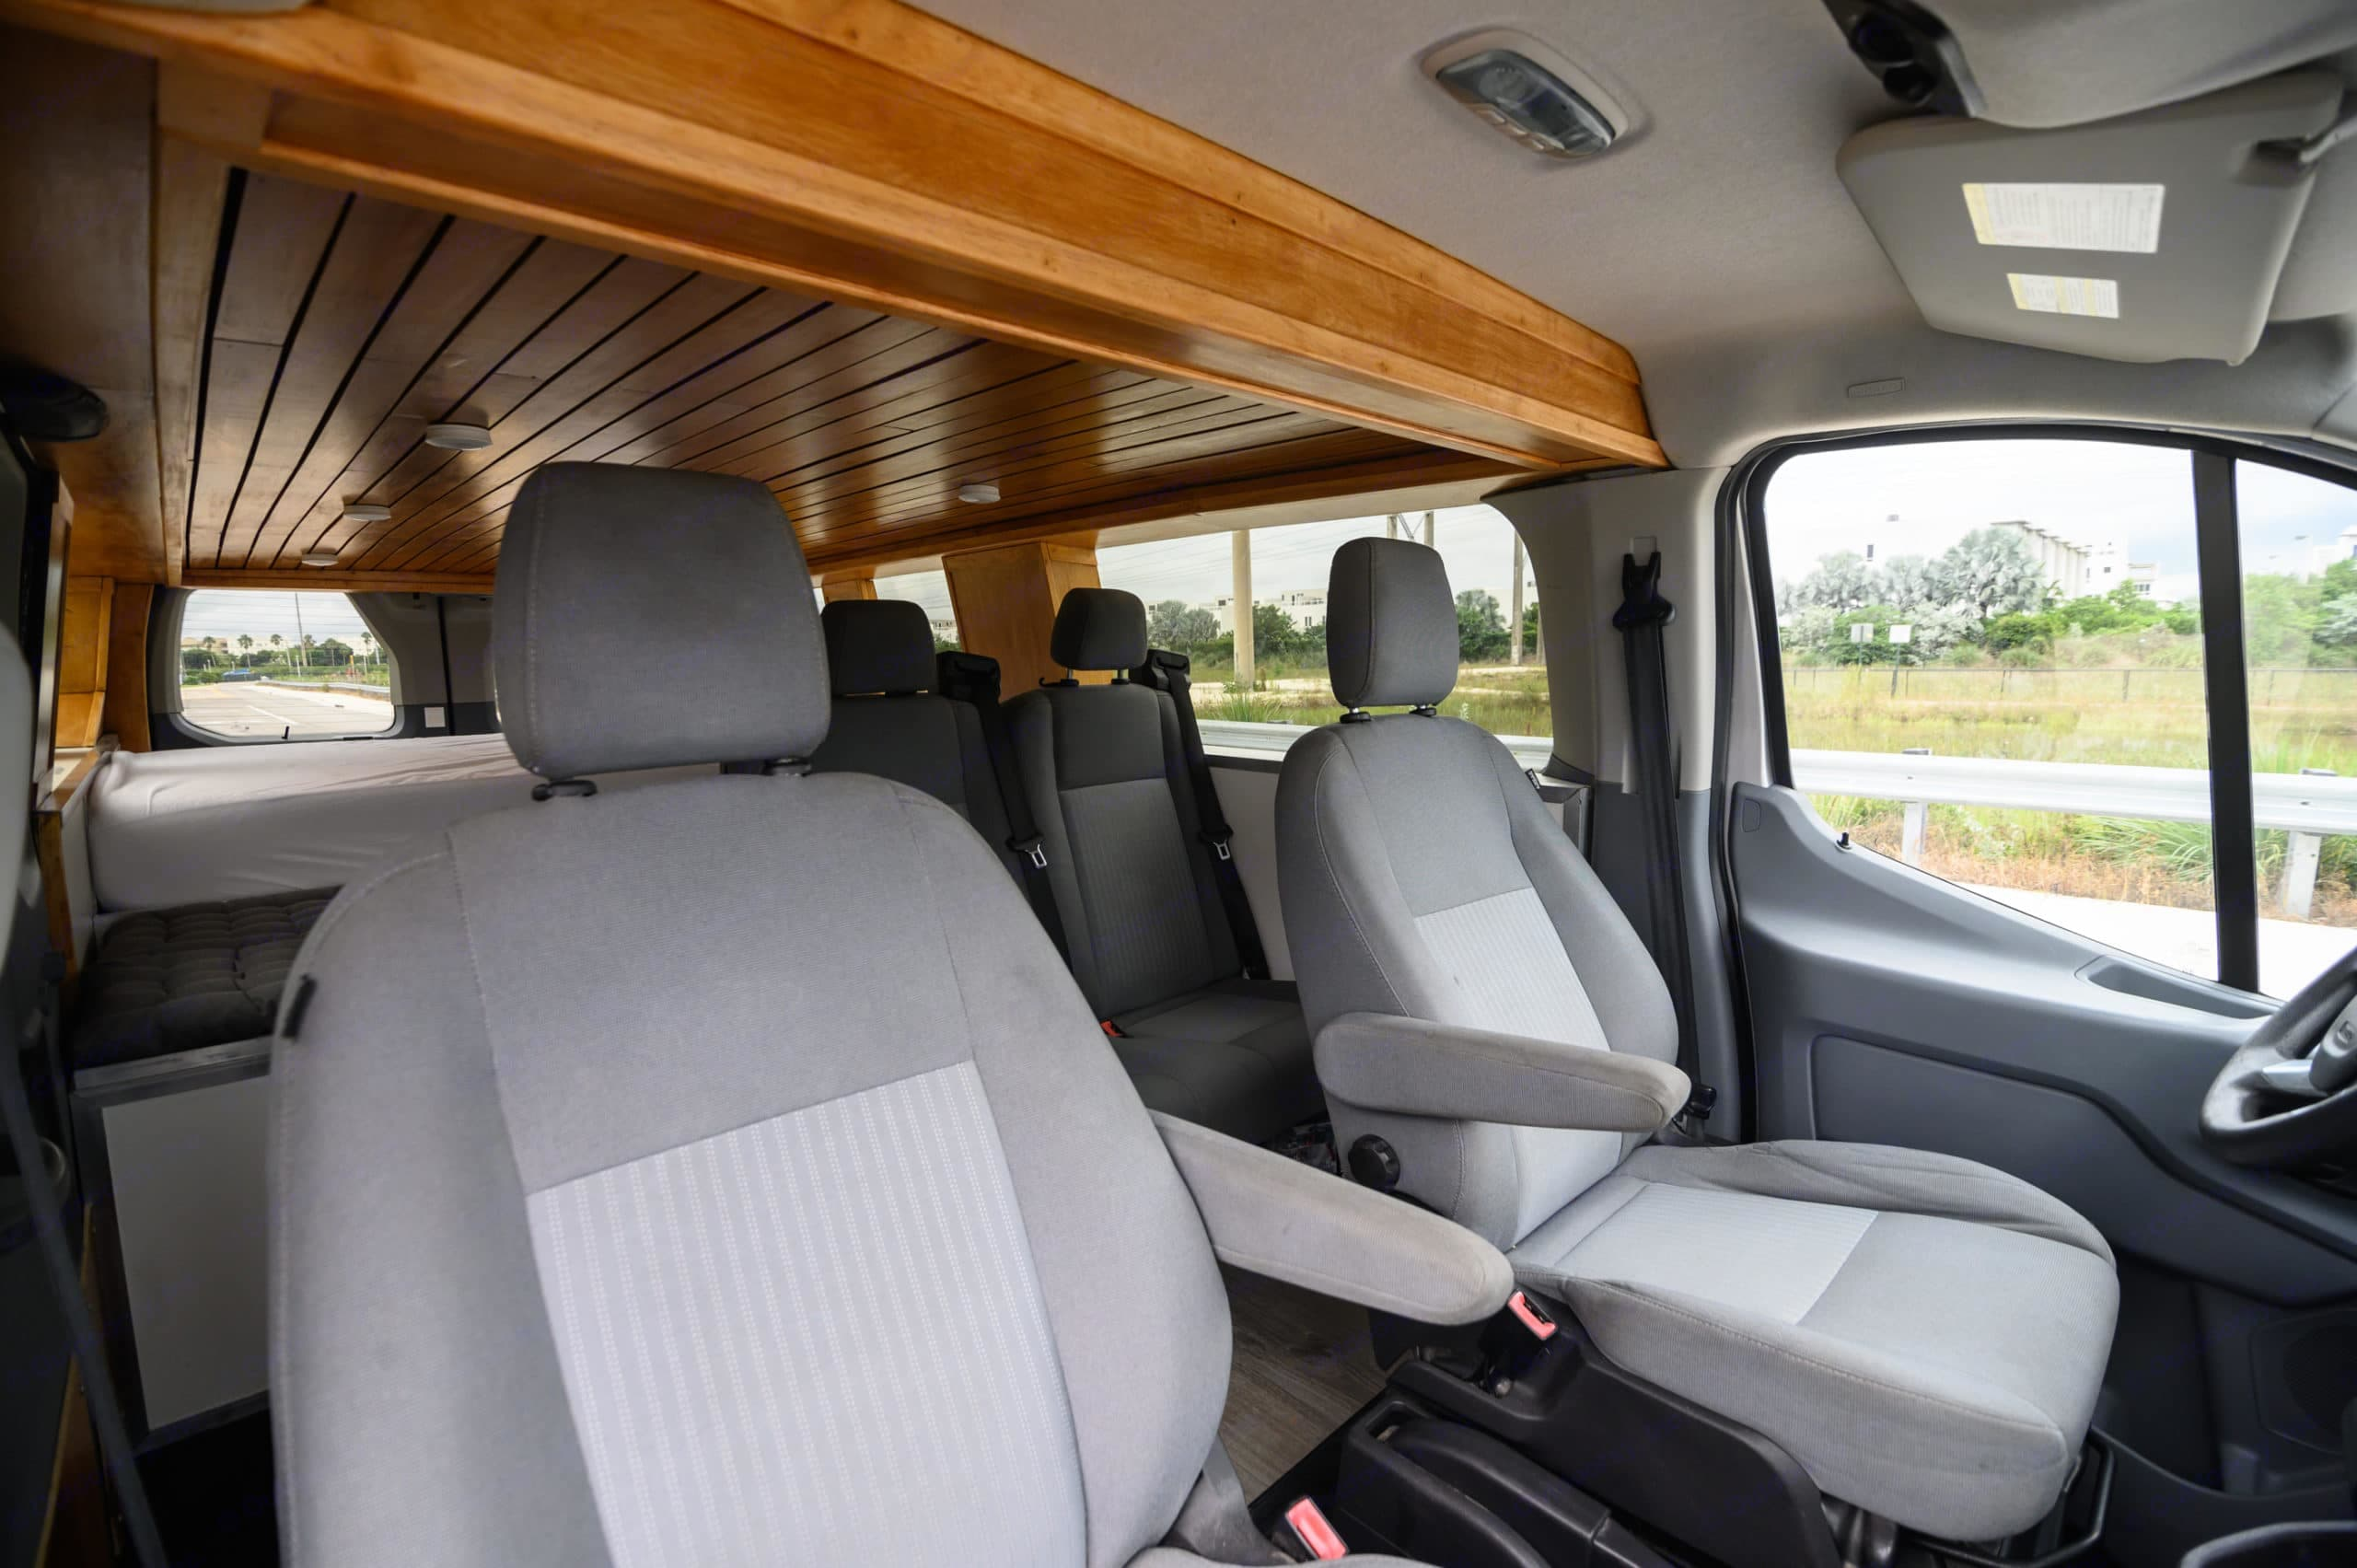 Seats 4 travelers. Ford Transit 2015